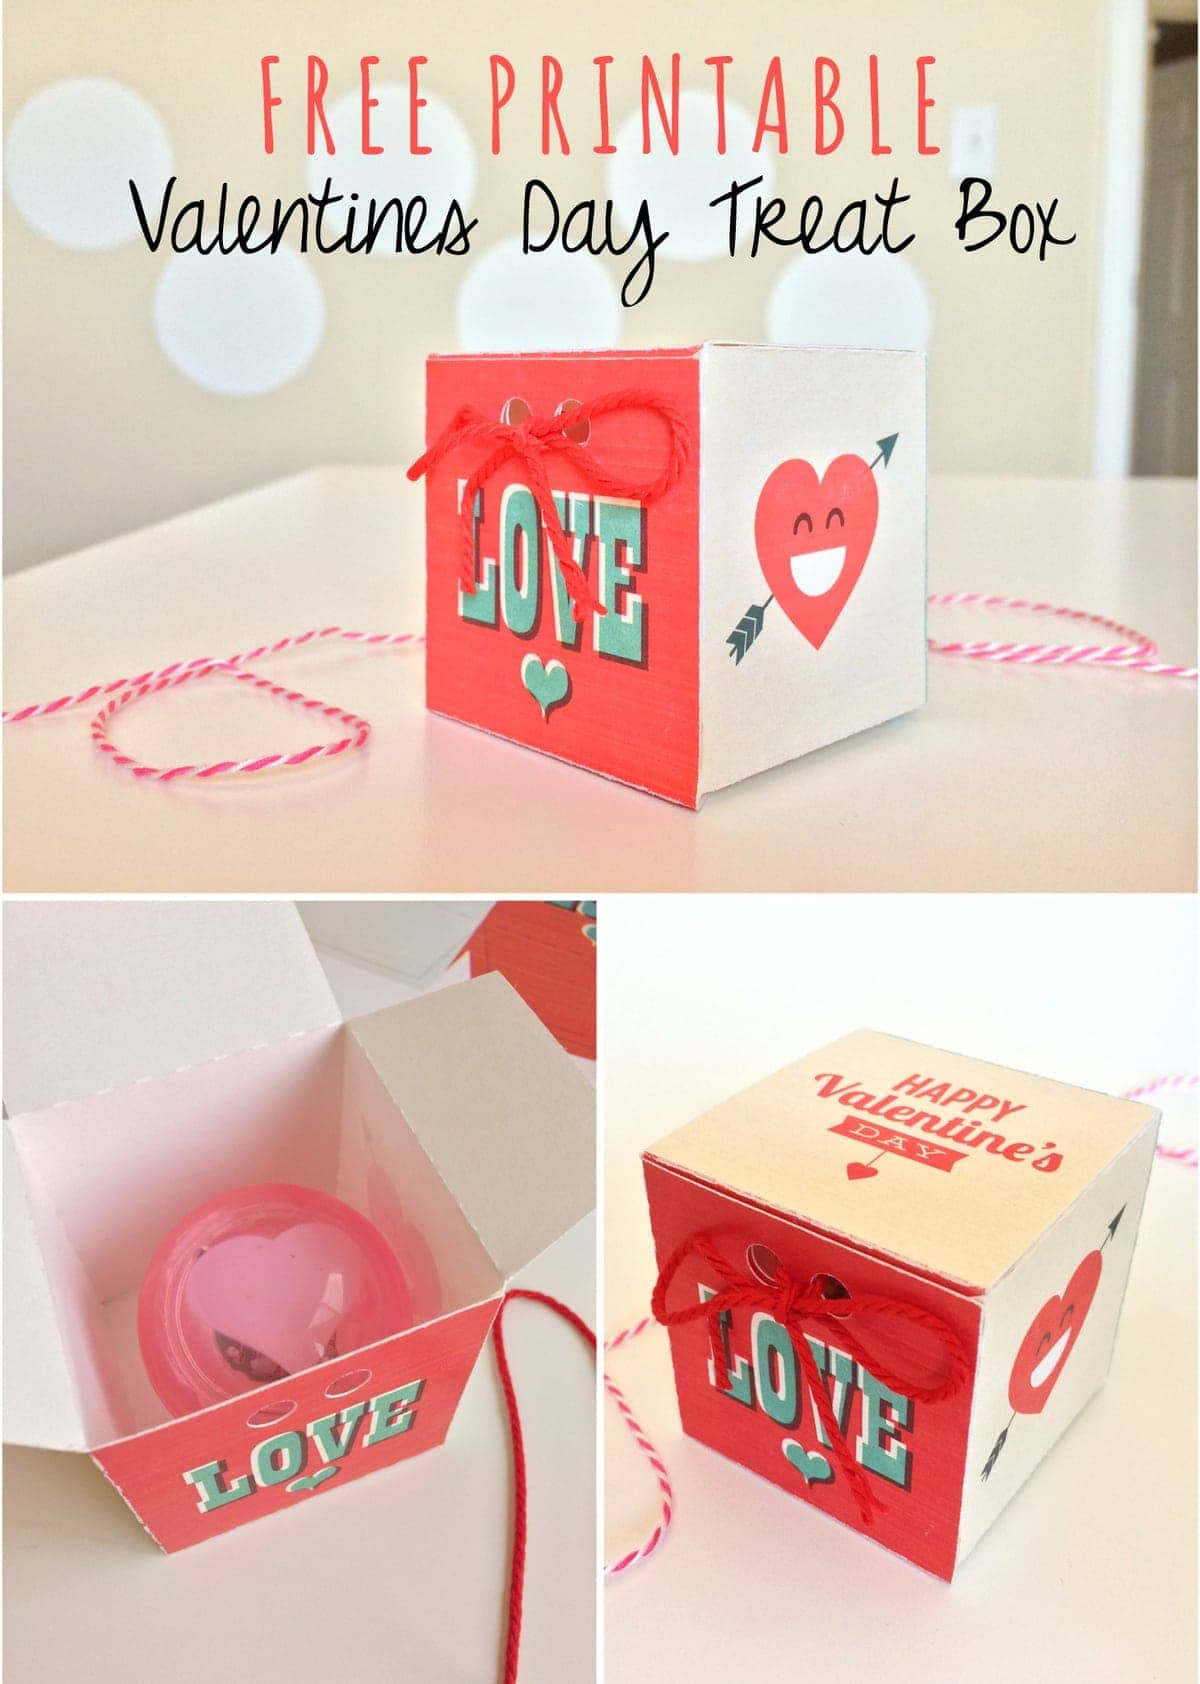 Free Printable Valentines Day Treat Box